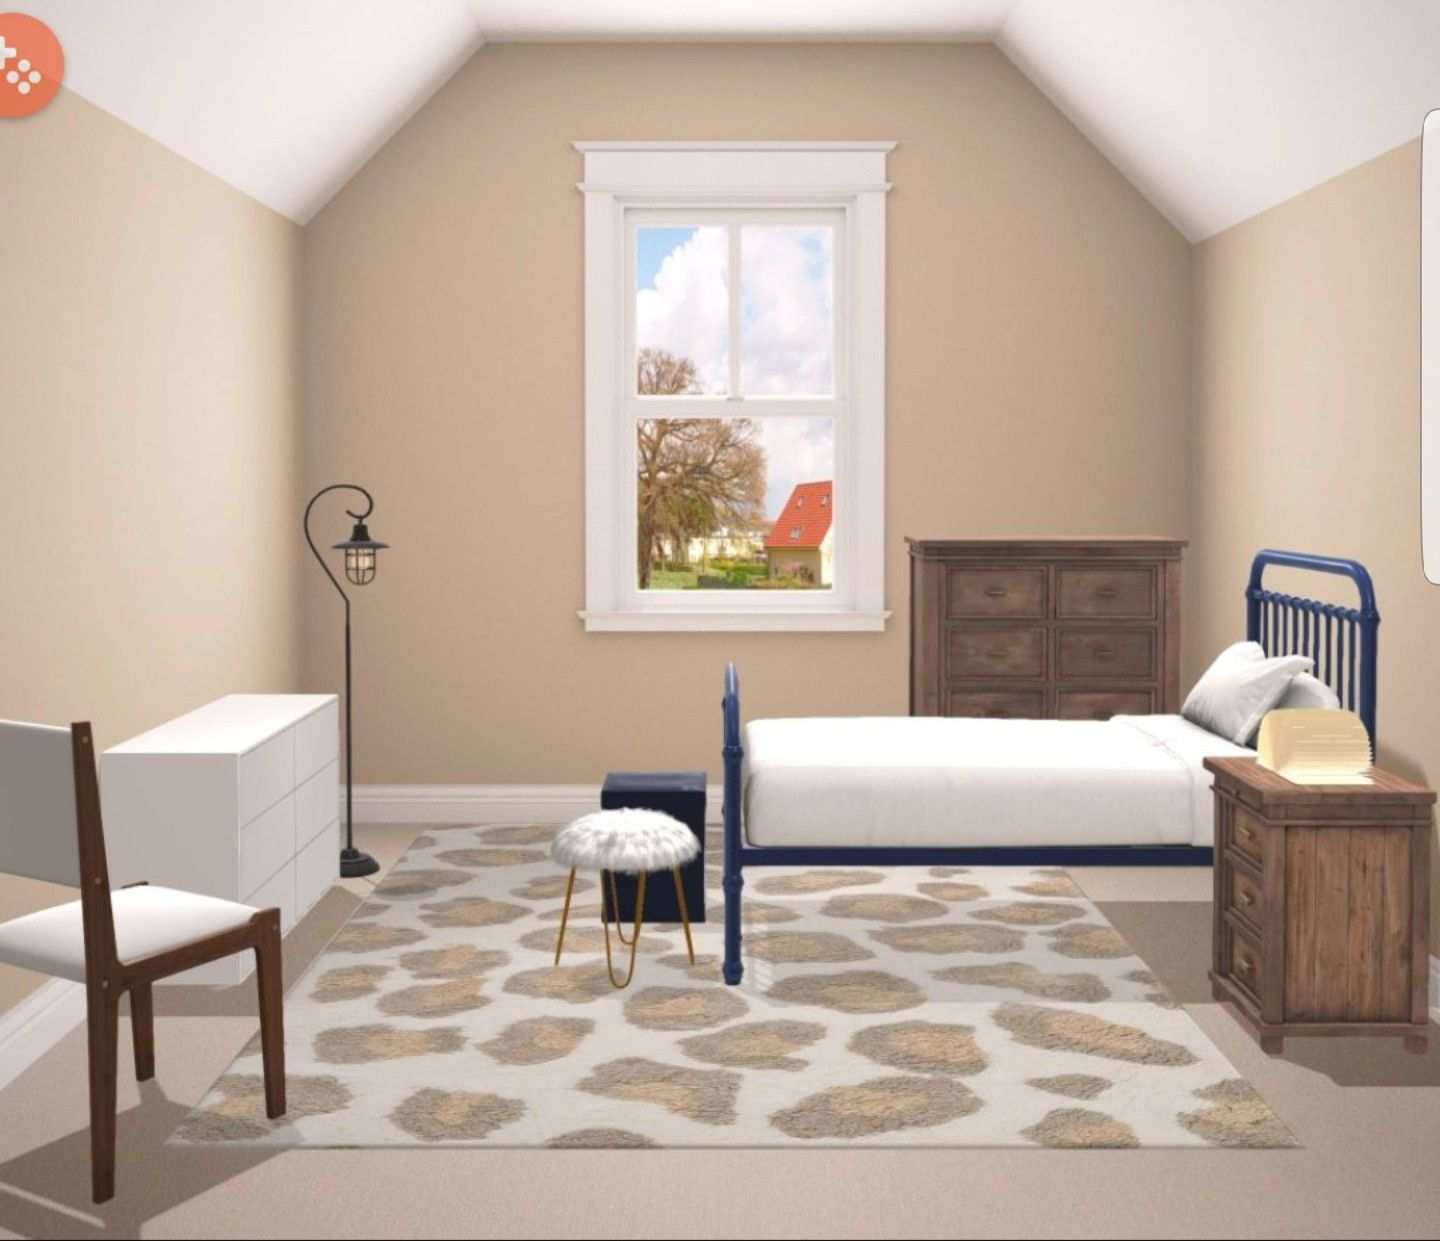 Design My Living Room App New My Project Of Light #kidsroom With Classic Elements Made Via Decorating Design